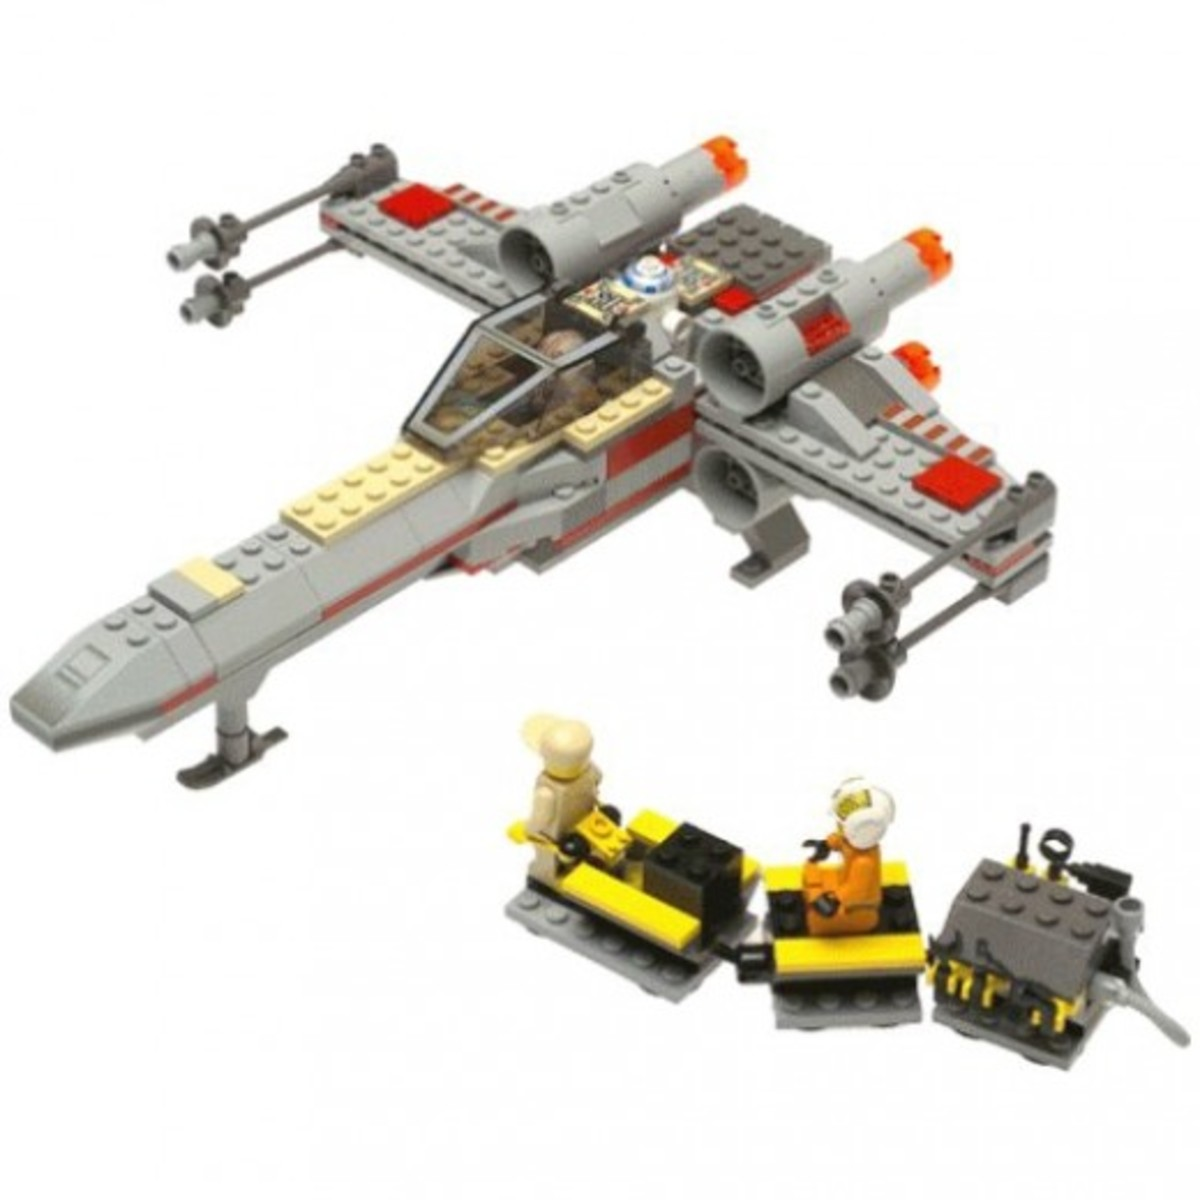 Lego Star Wars X-Wing Fighter 7140 Assembled